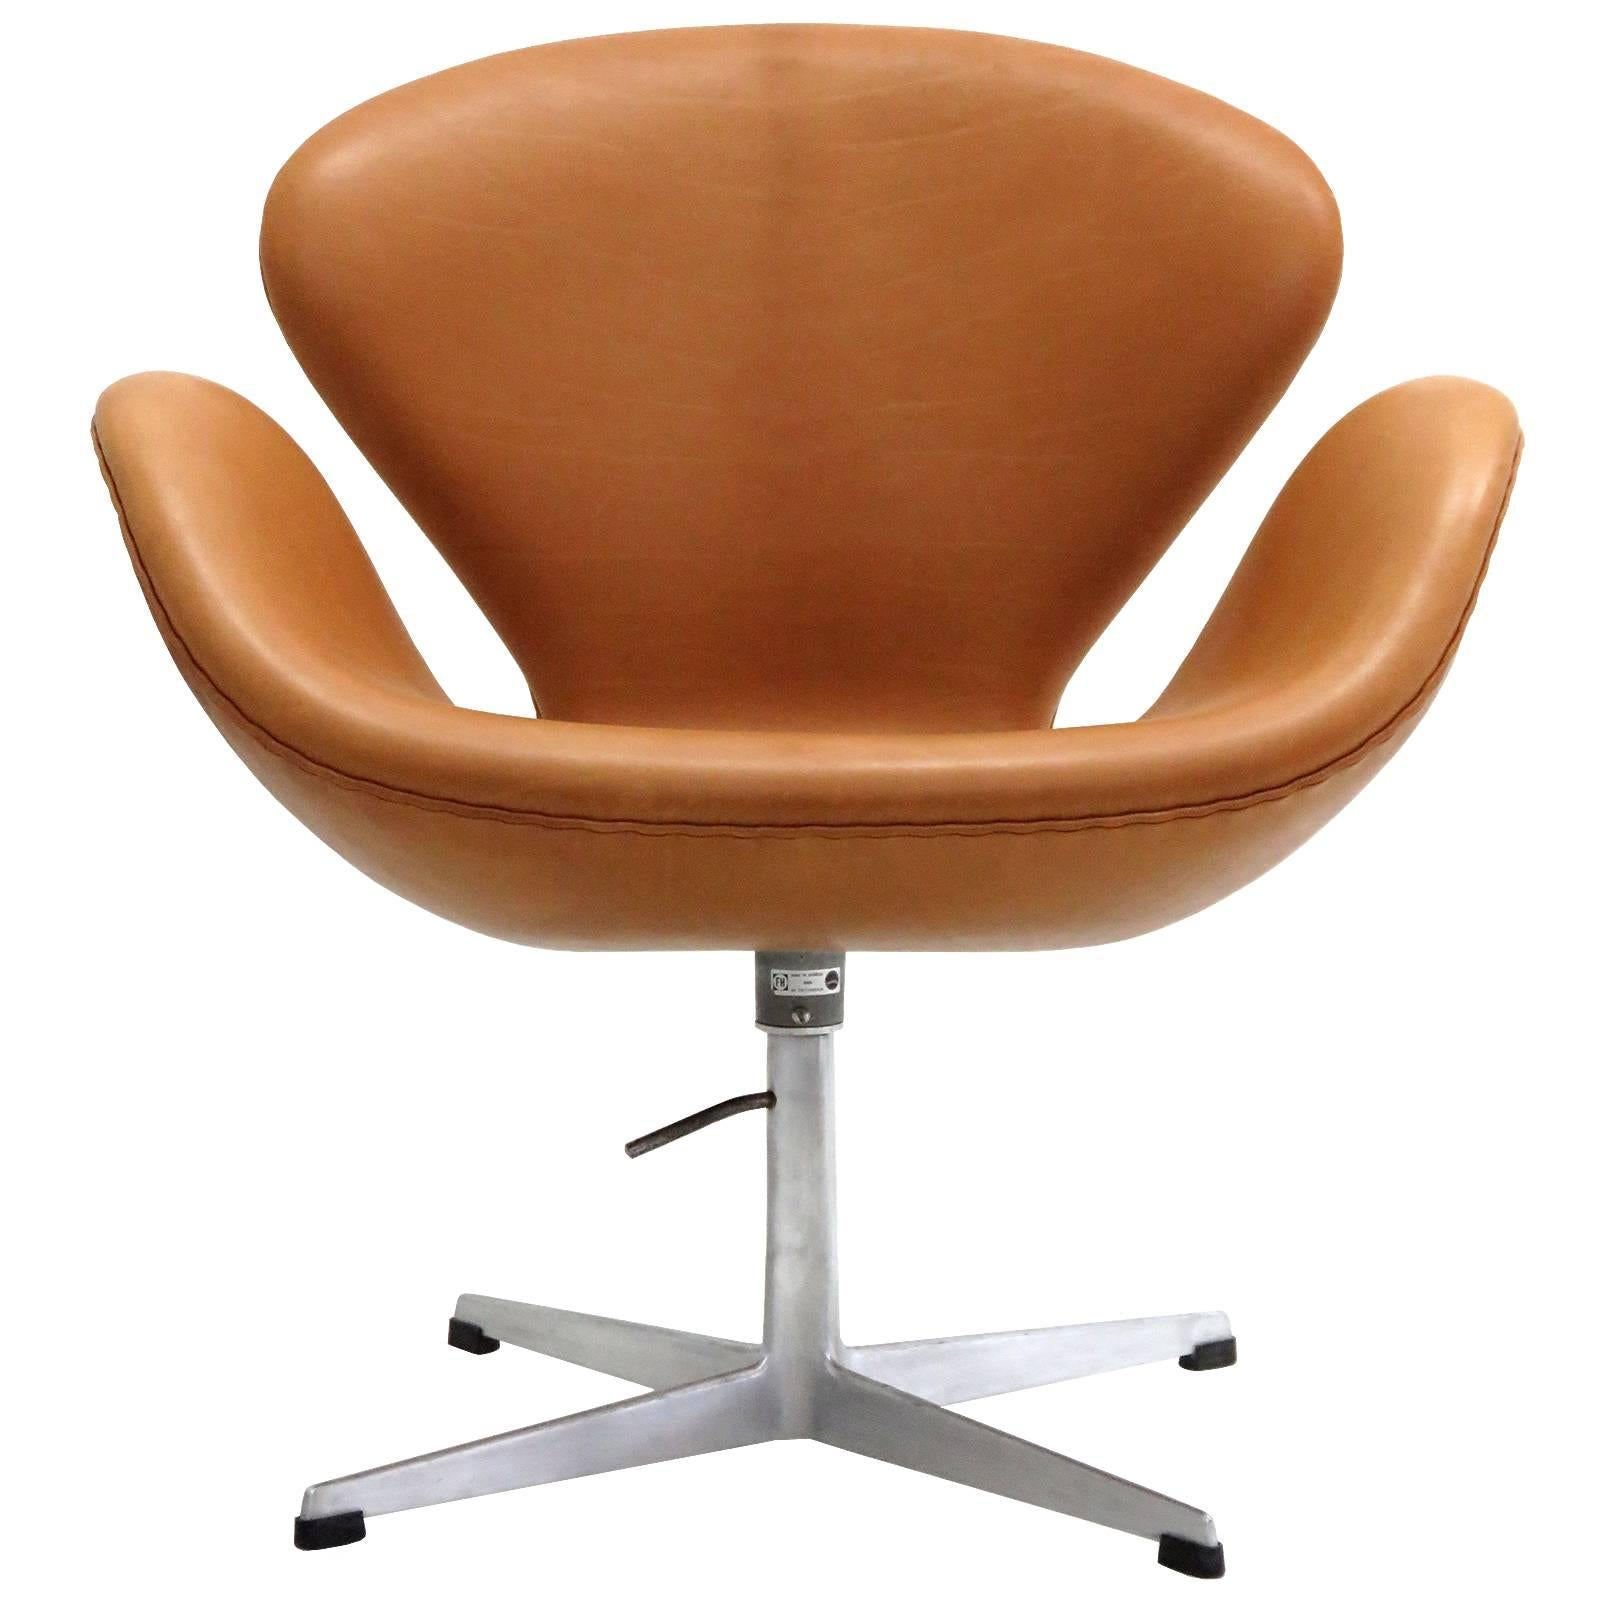 arne jacobsen swan chair material for chairs to recover model 3320 sale at 1stdibs